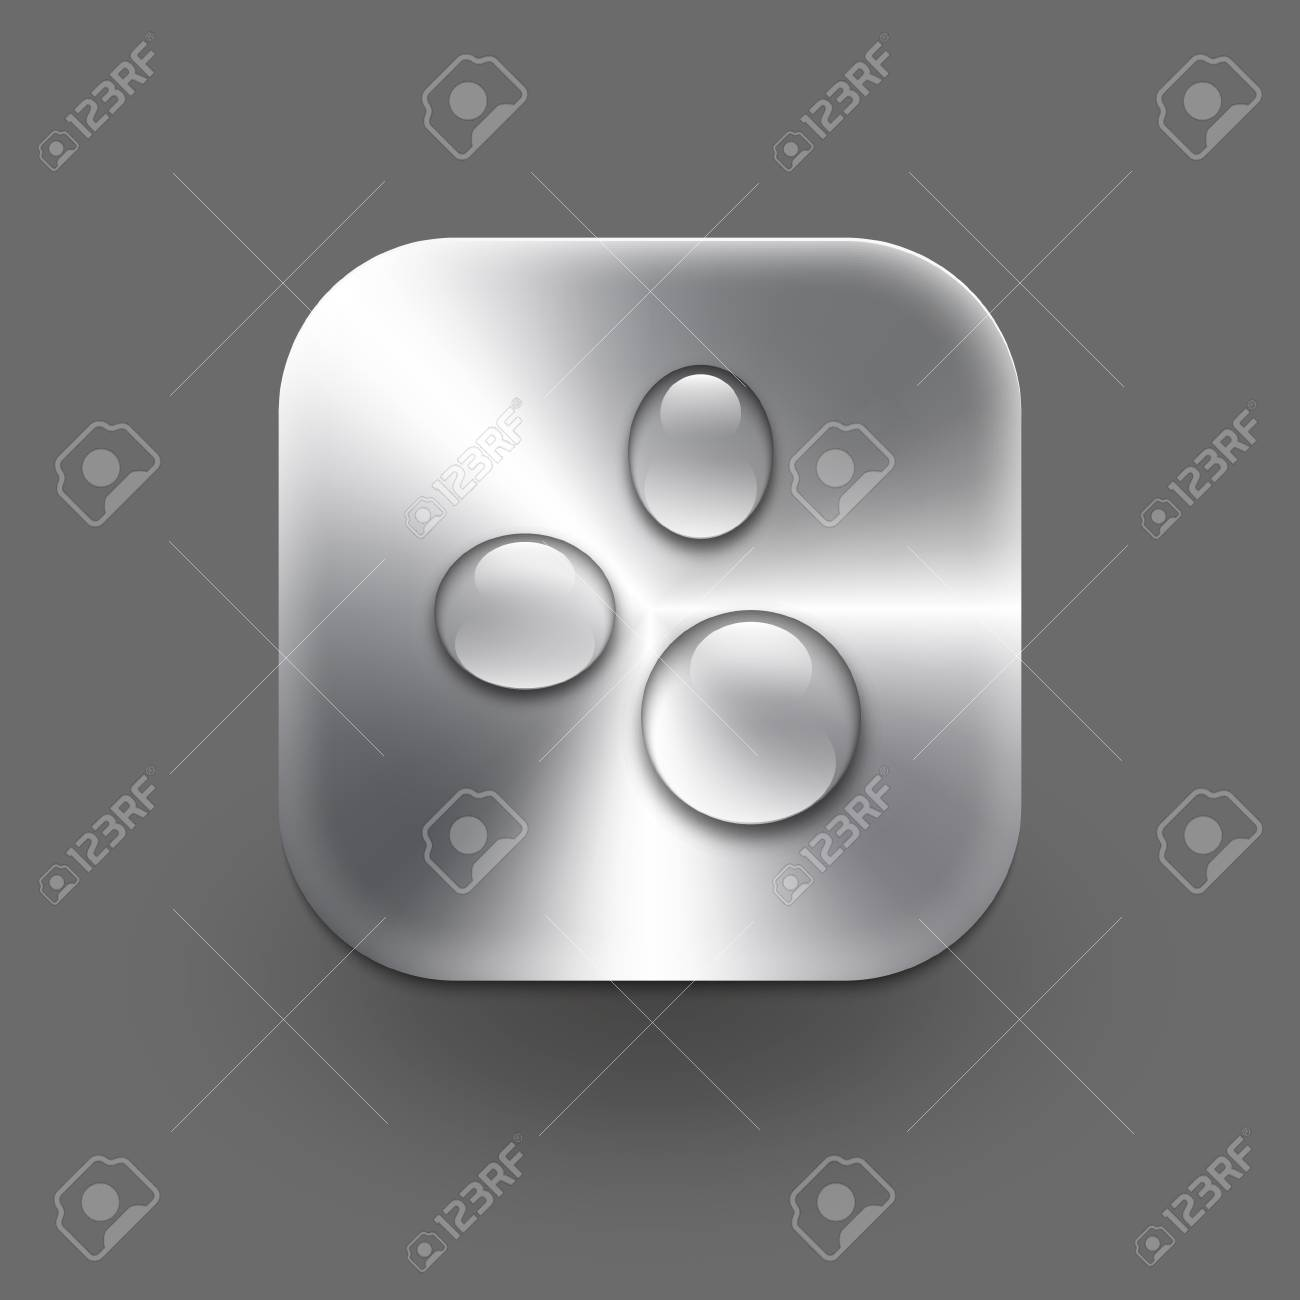 Metallic icon with drops   Vector eps10 Stock Vector - 19121613